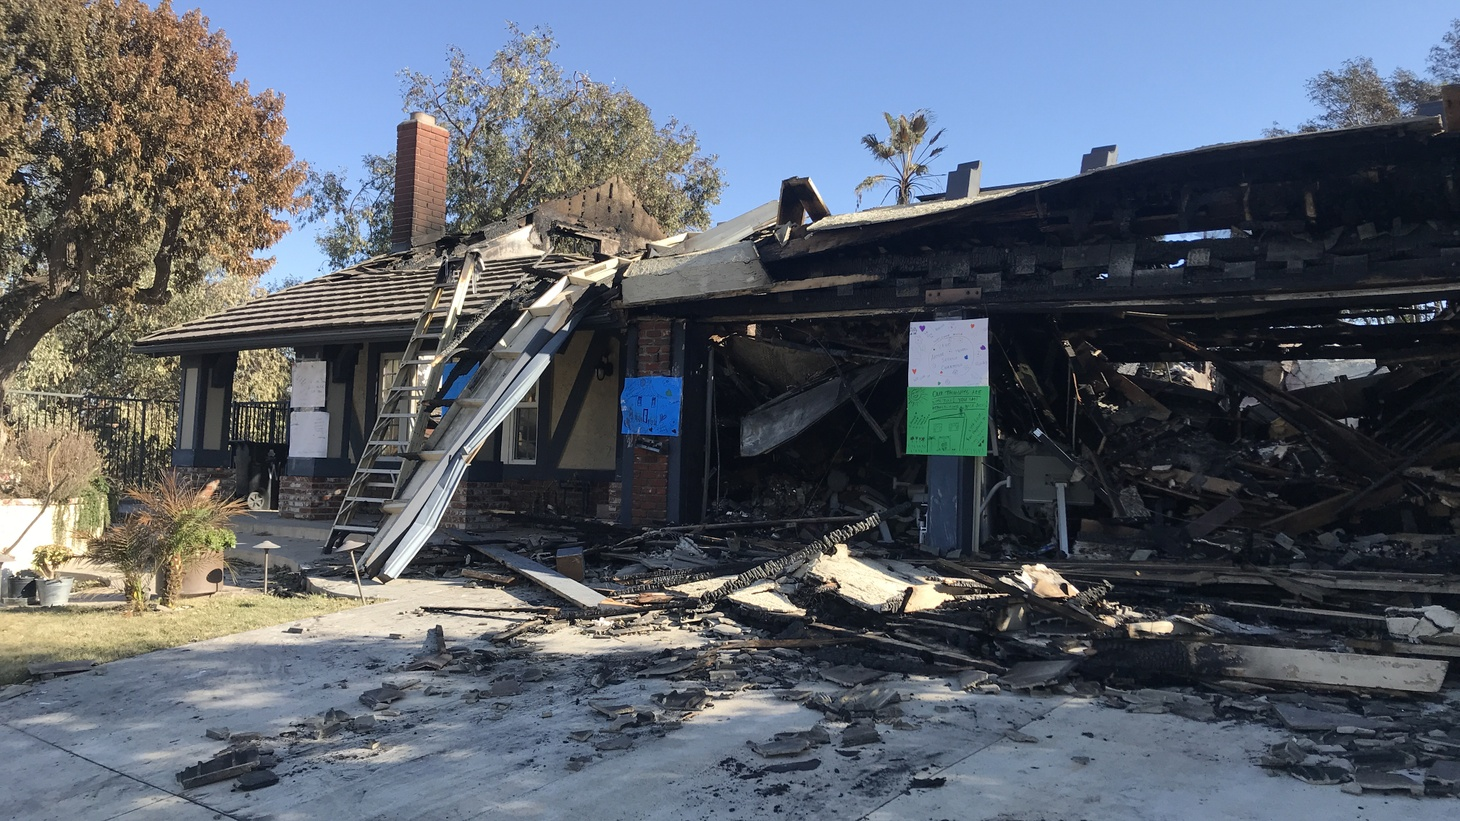 The Saddleridge fire destroyed dozens of buildings, including some homes, like this one on Hampton Court in Porter Ranch